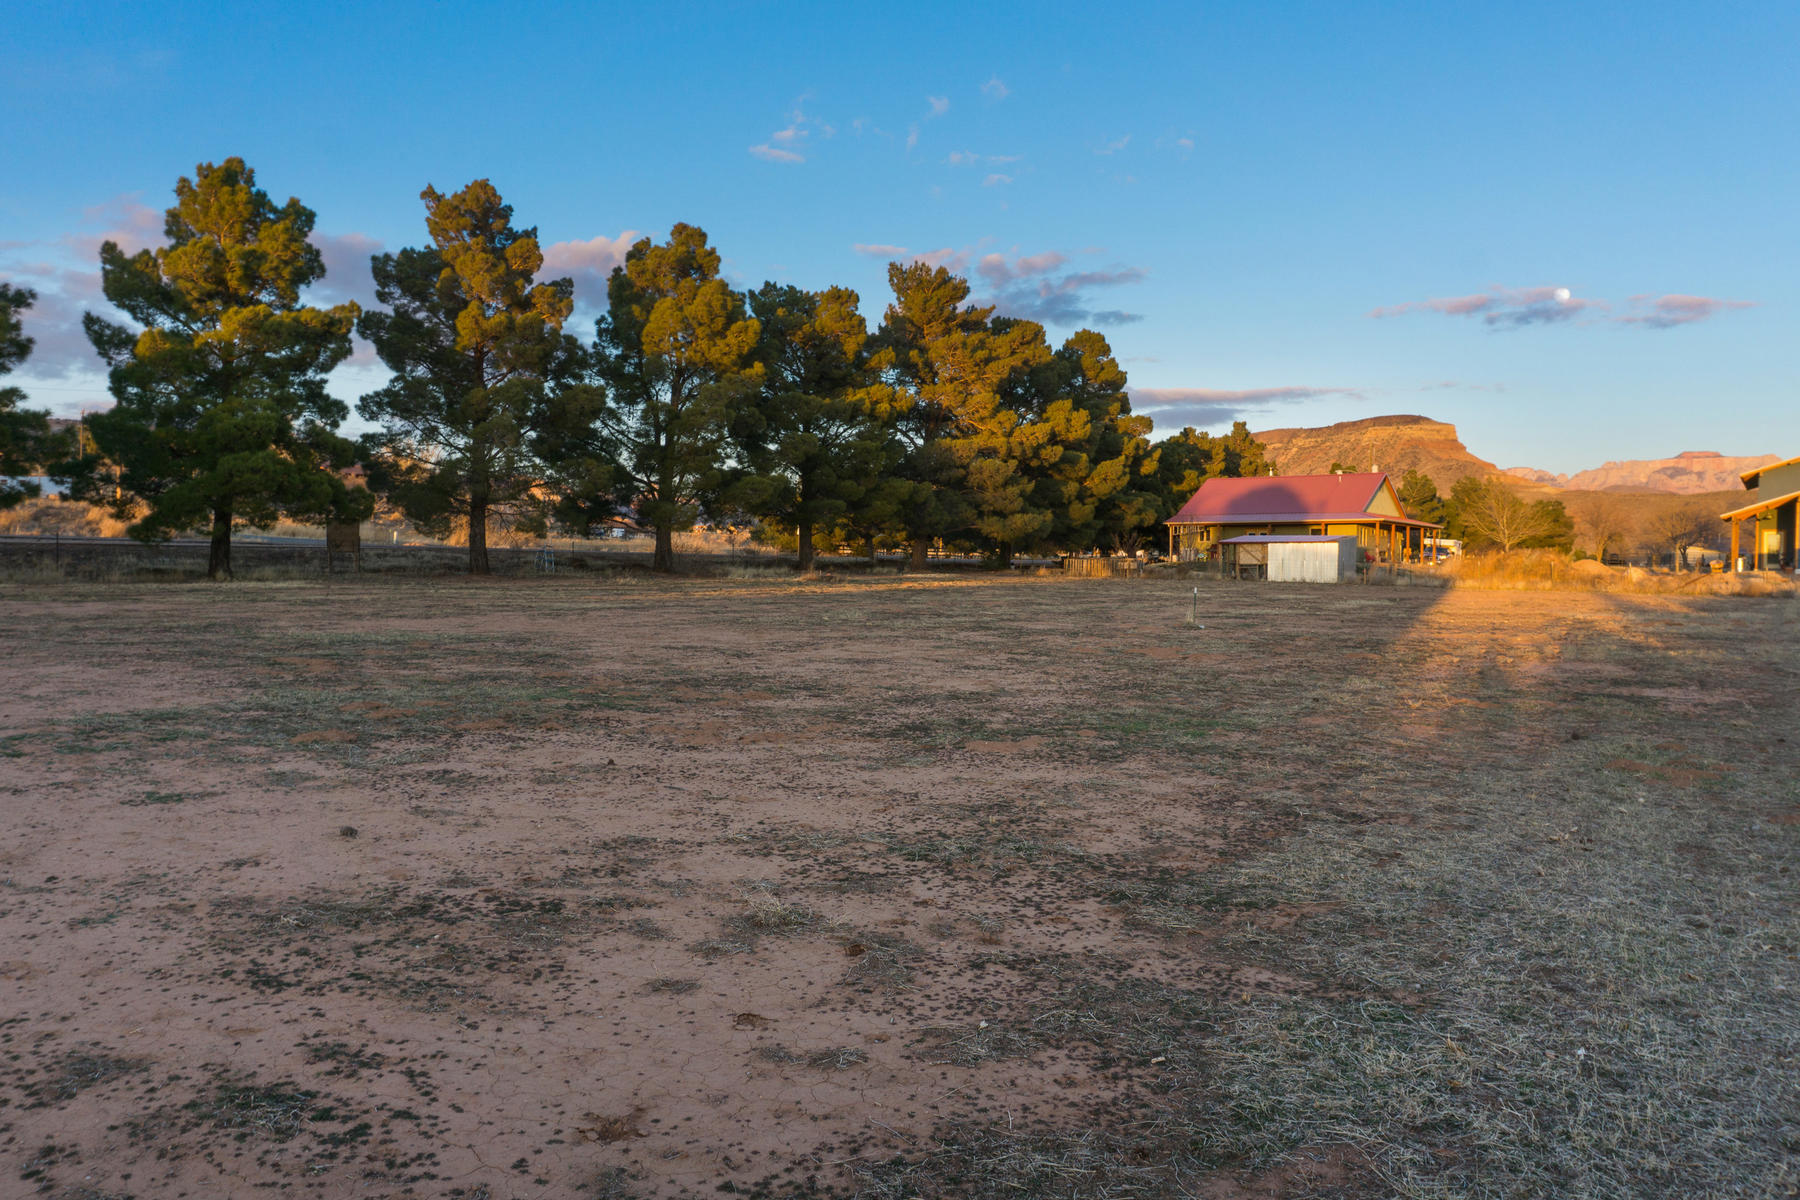 Land for Sale at Acre Lot on the Way to Zion 150 West HWY 9 Virgin, Utah 84779 United States